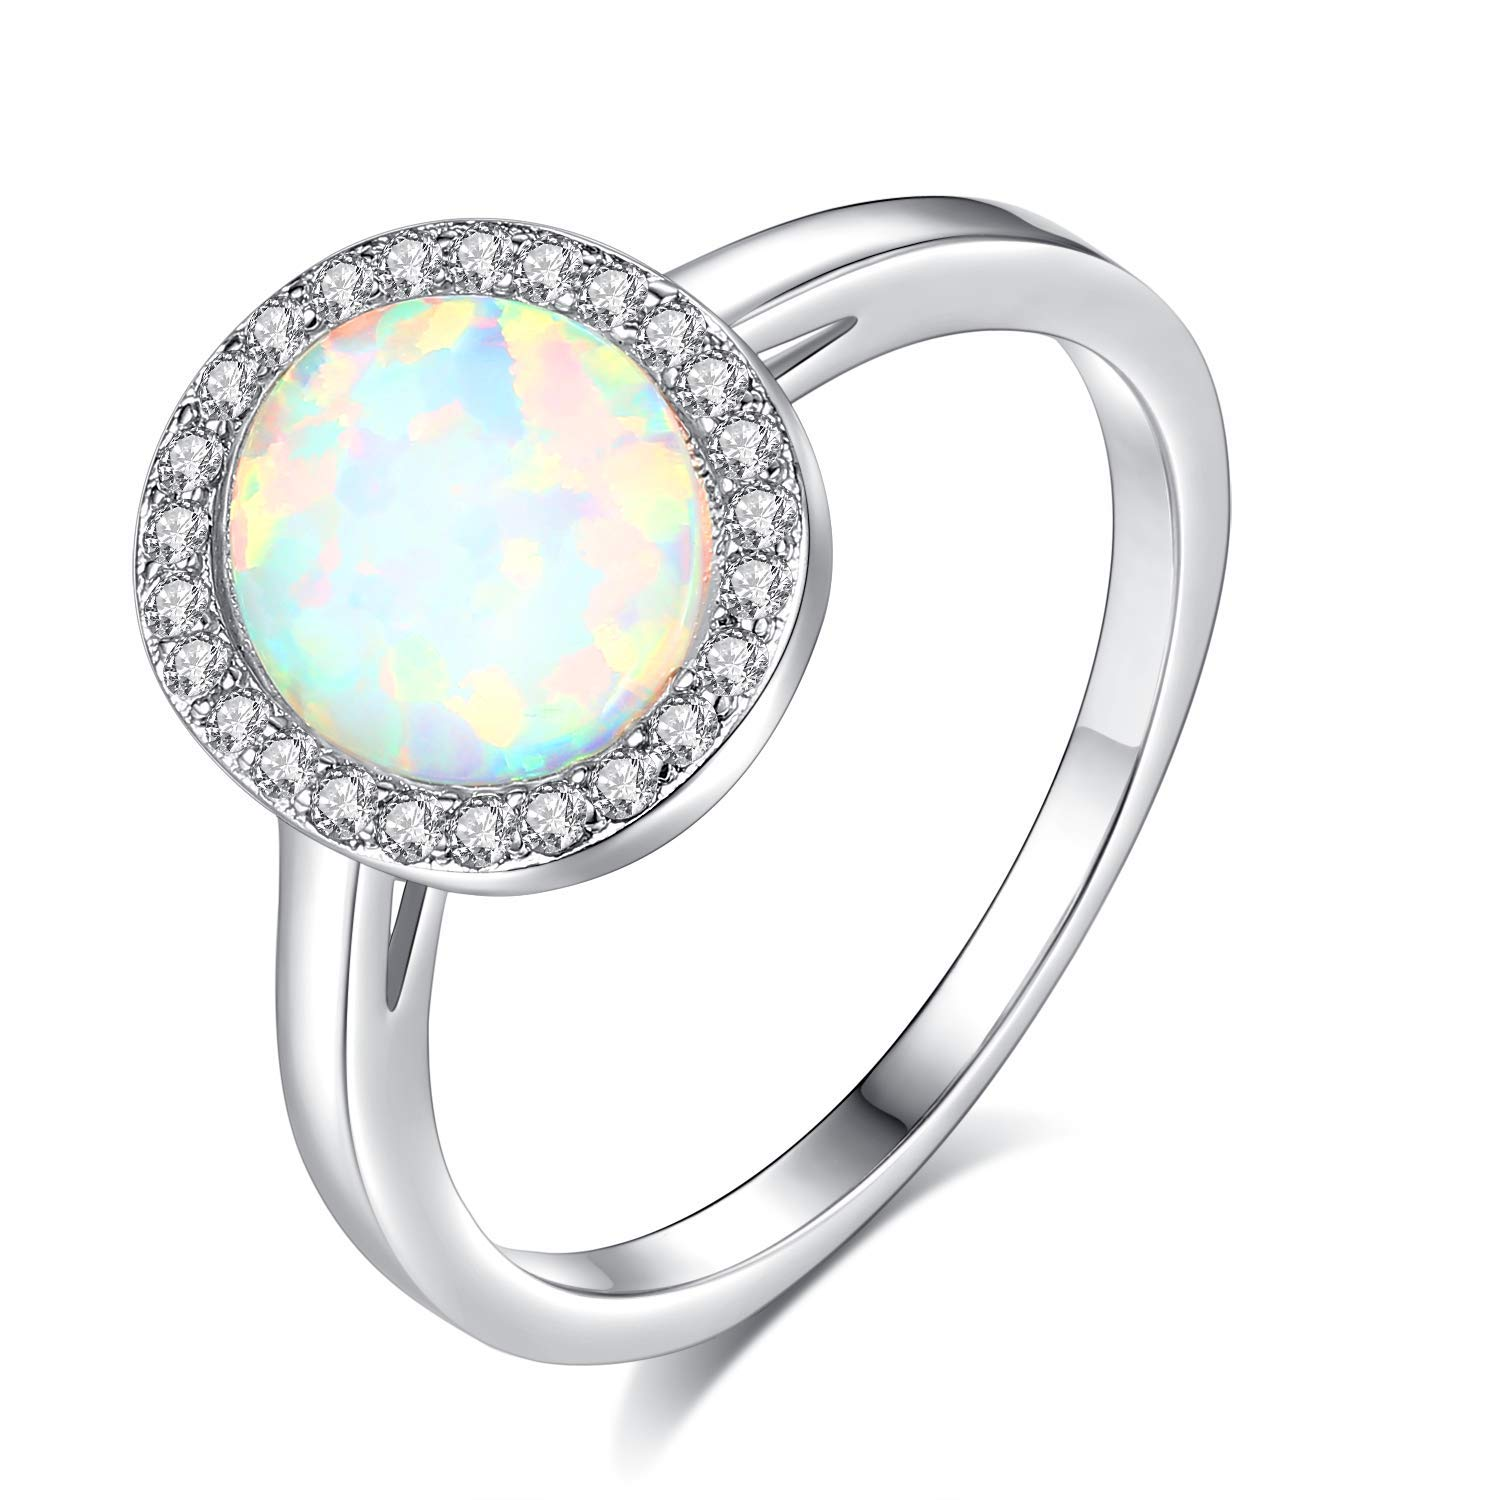 JORA 18K White Gold Plated Oval White Opal & CZ Halo Engagement Ring, Size 10